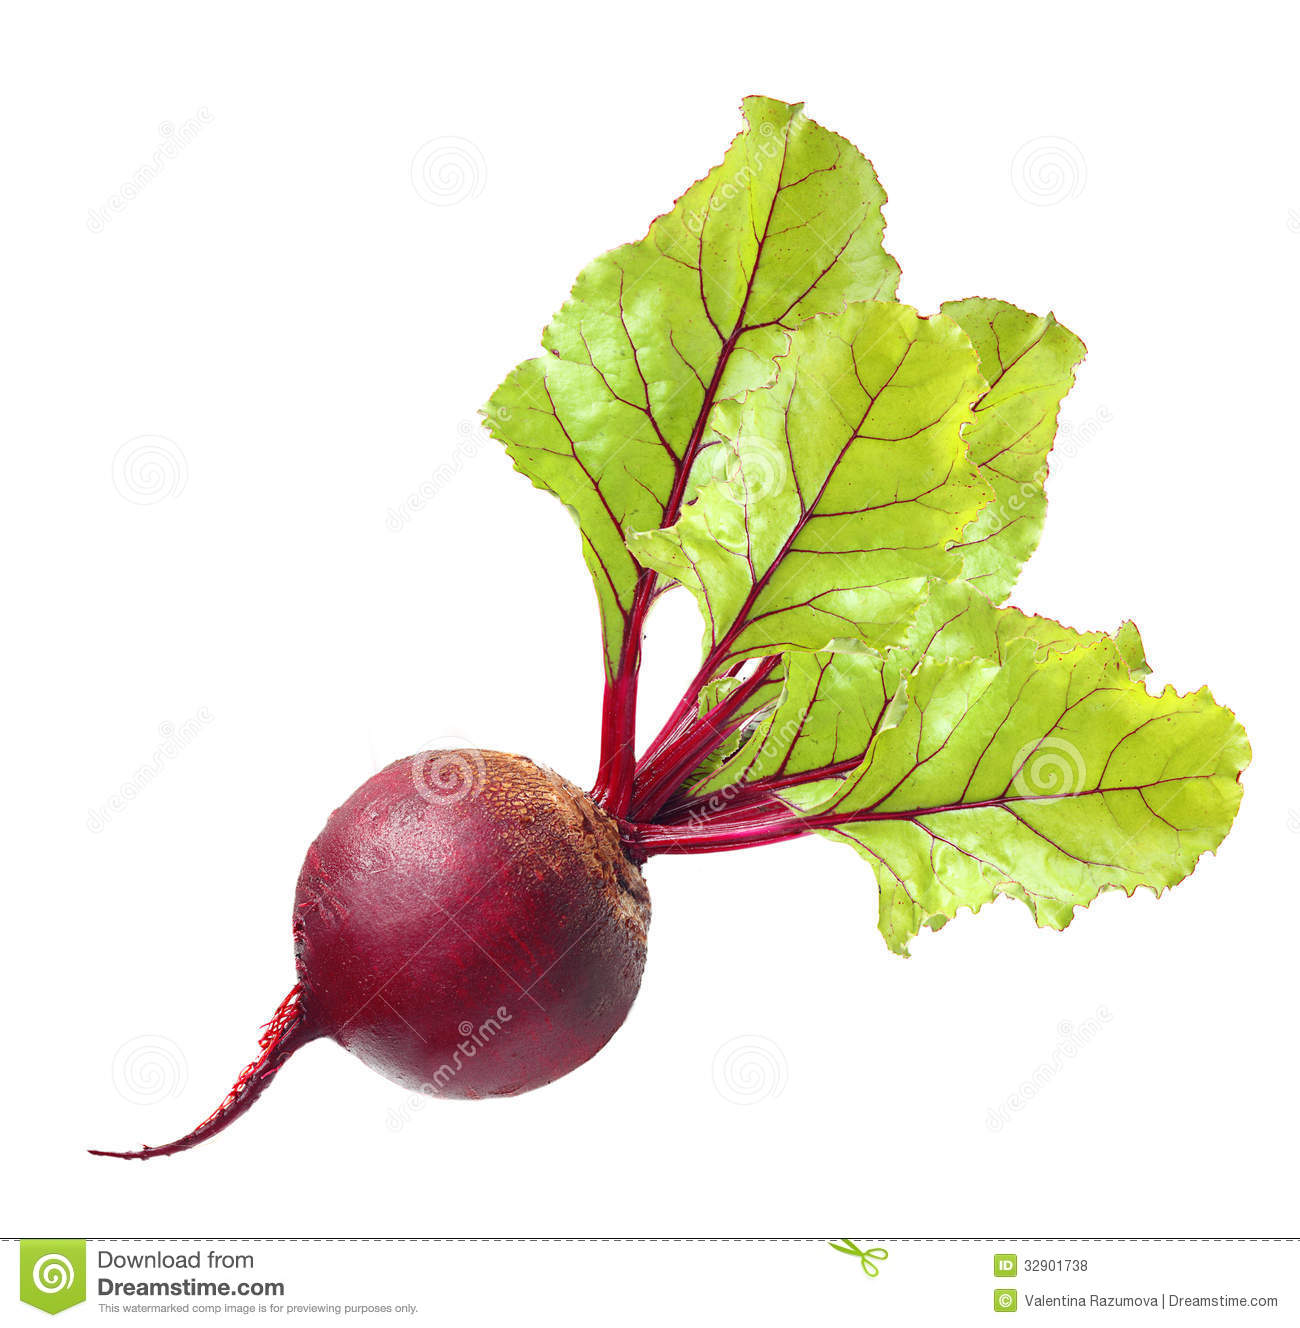 Beetroot With Leaves Royalty Free Stock Photos - Image: 32901738